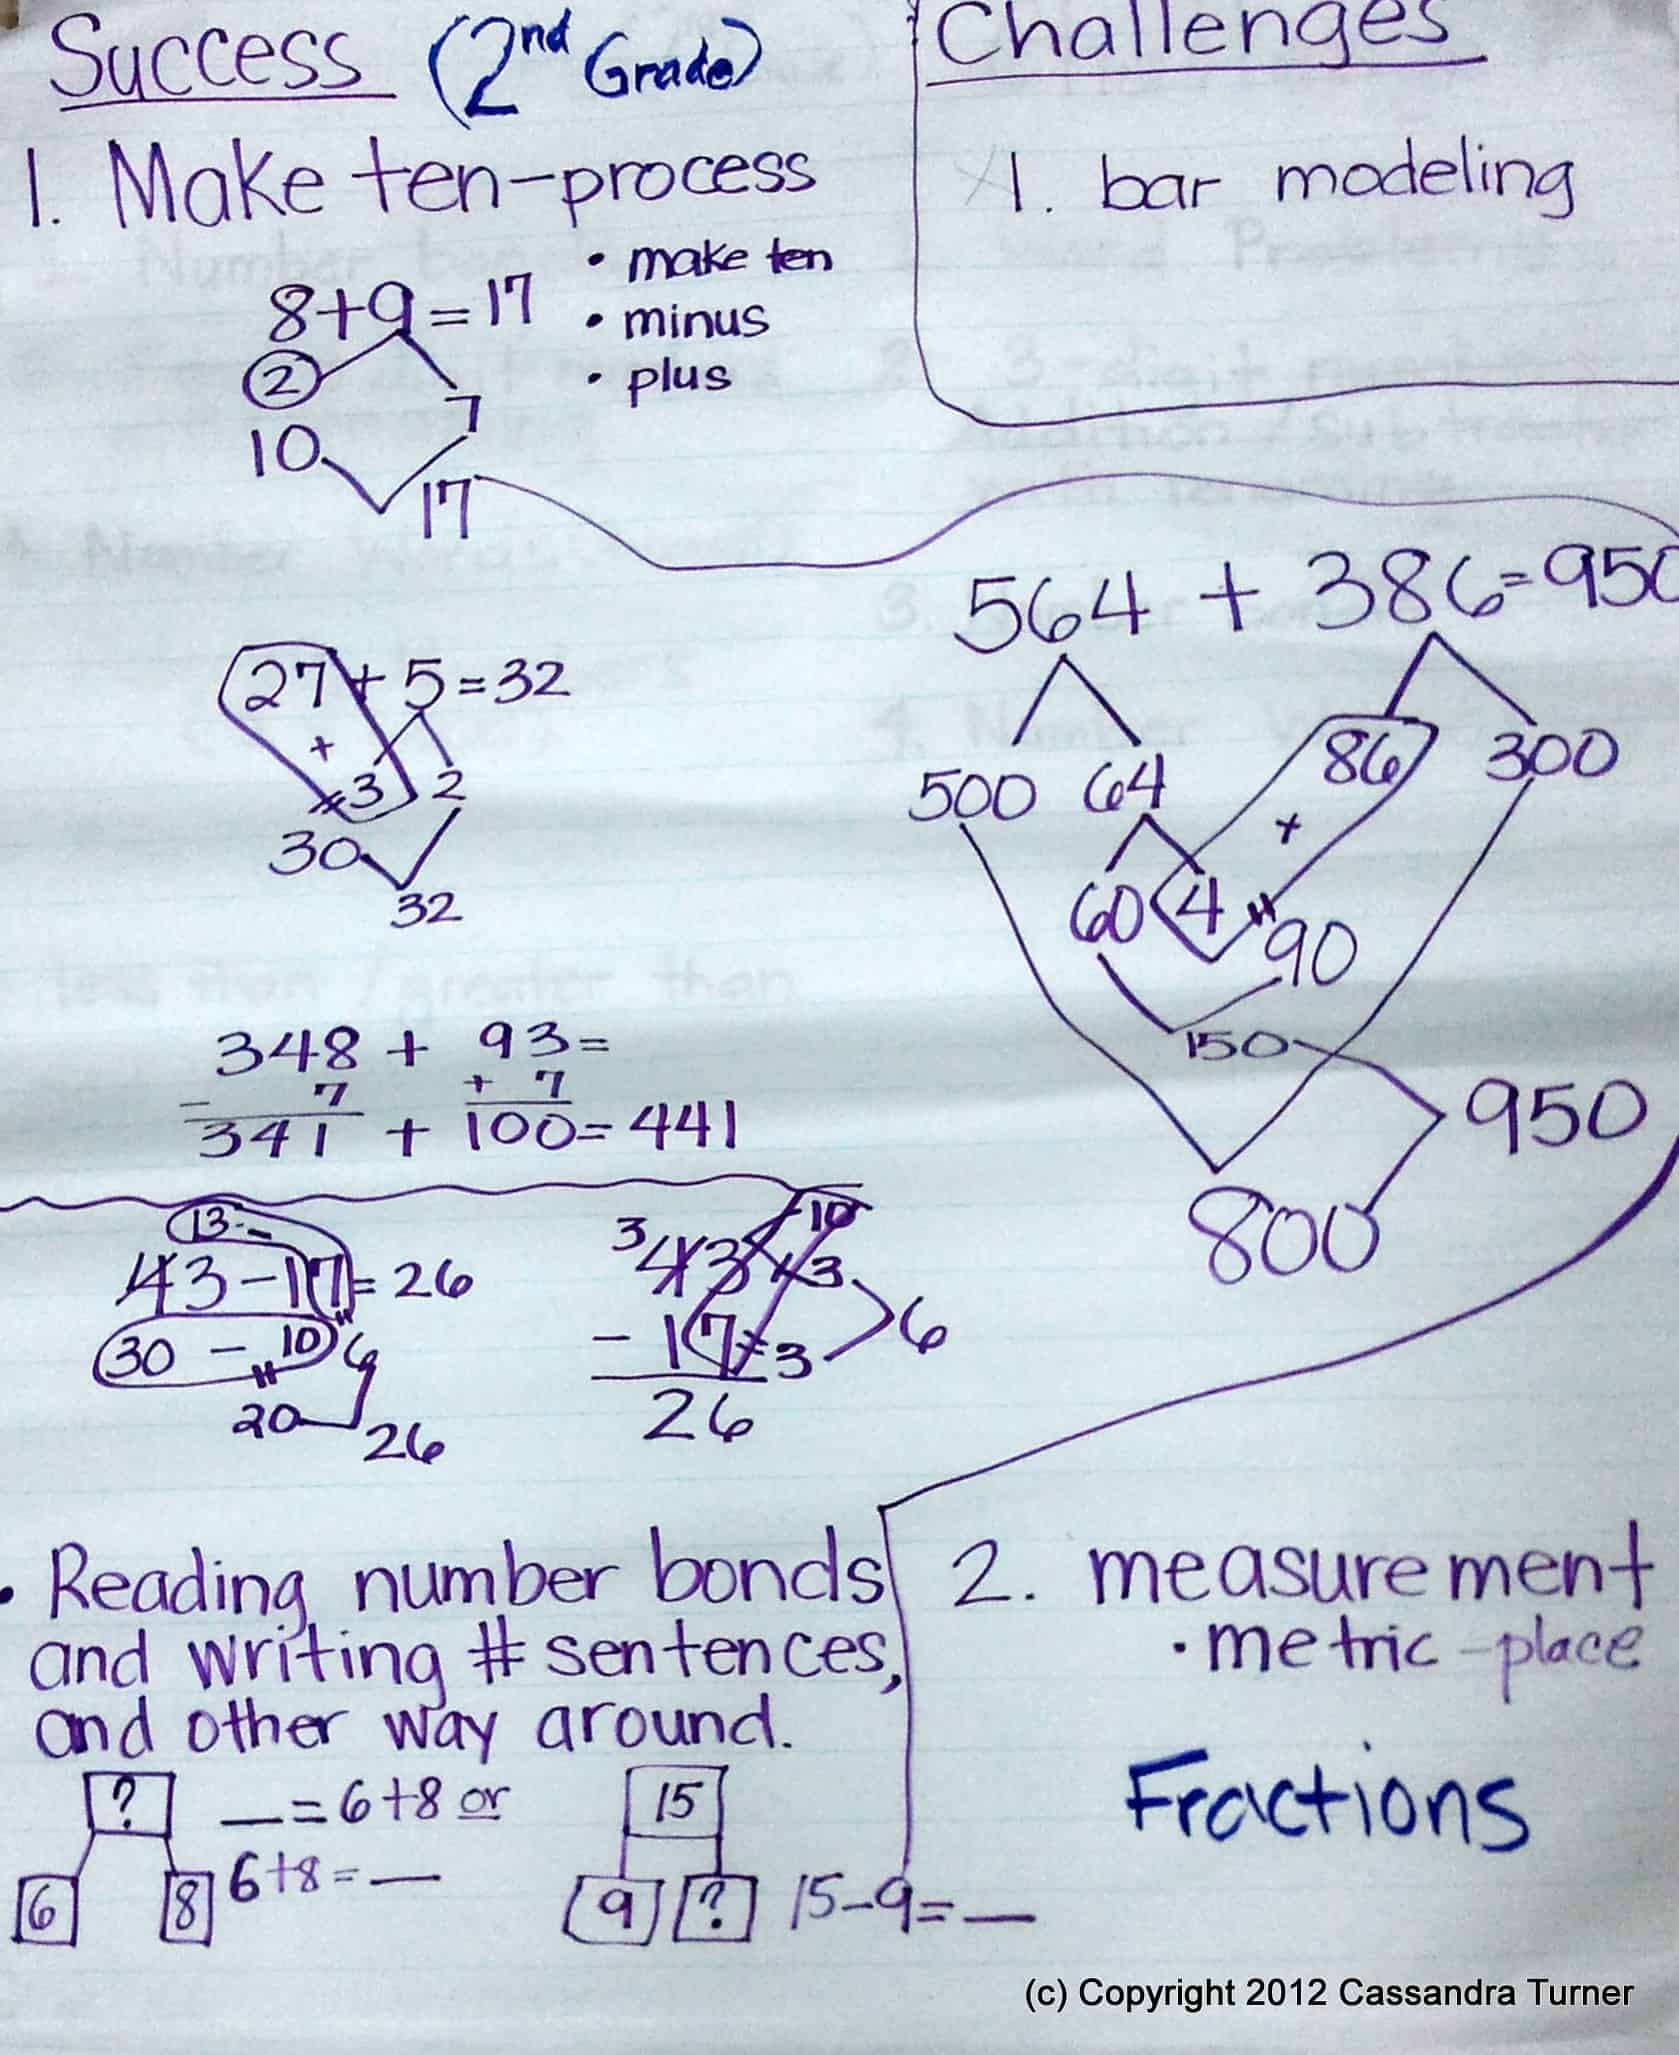 Singapore math challenge, grades 5 - 8 problems and solutions